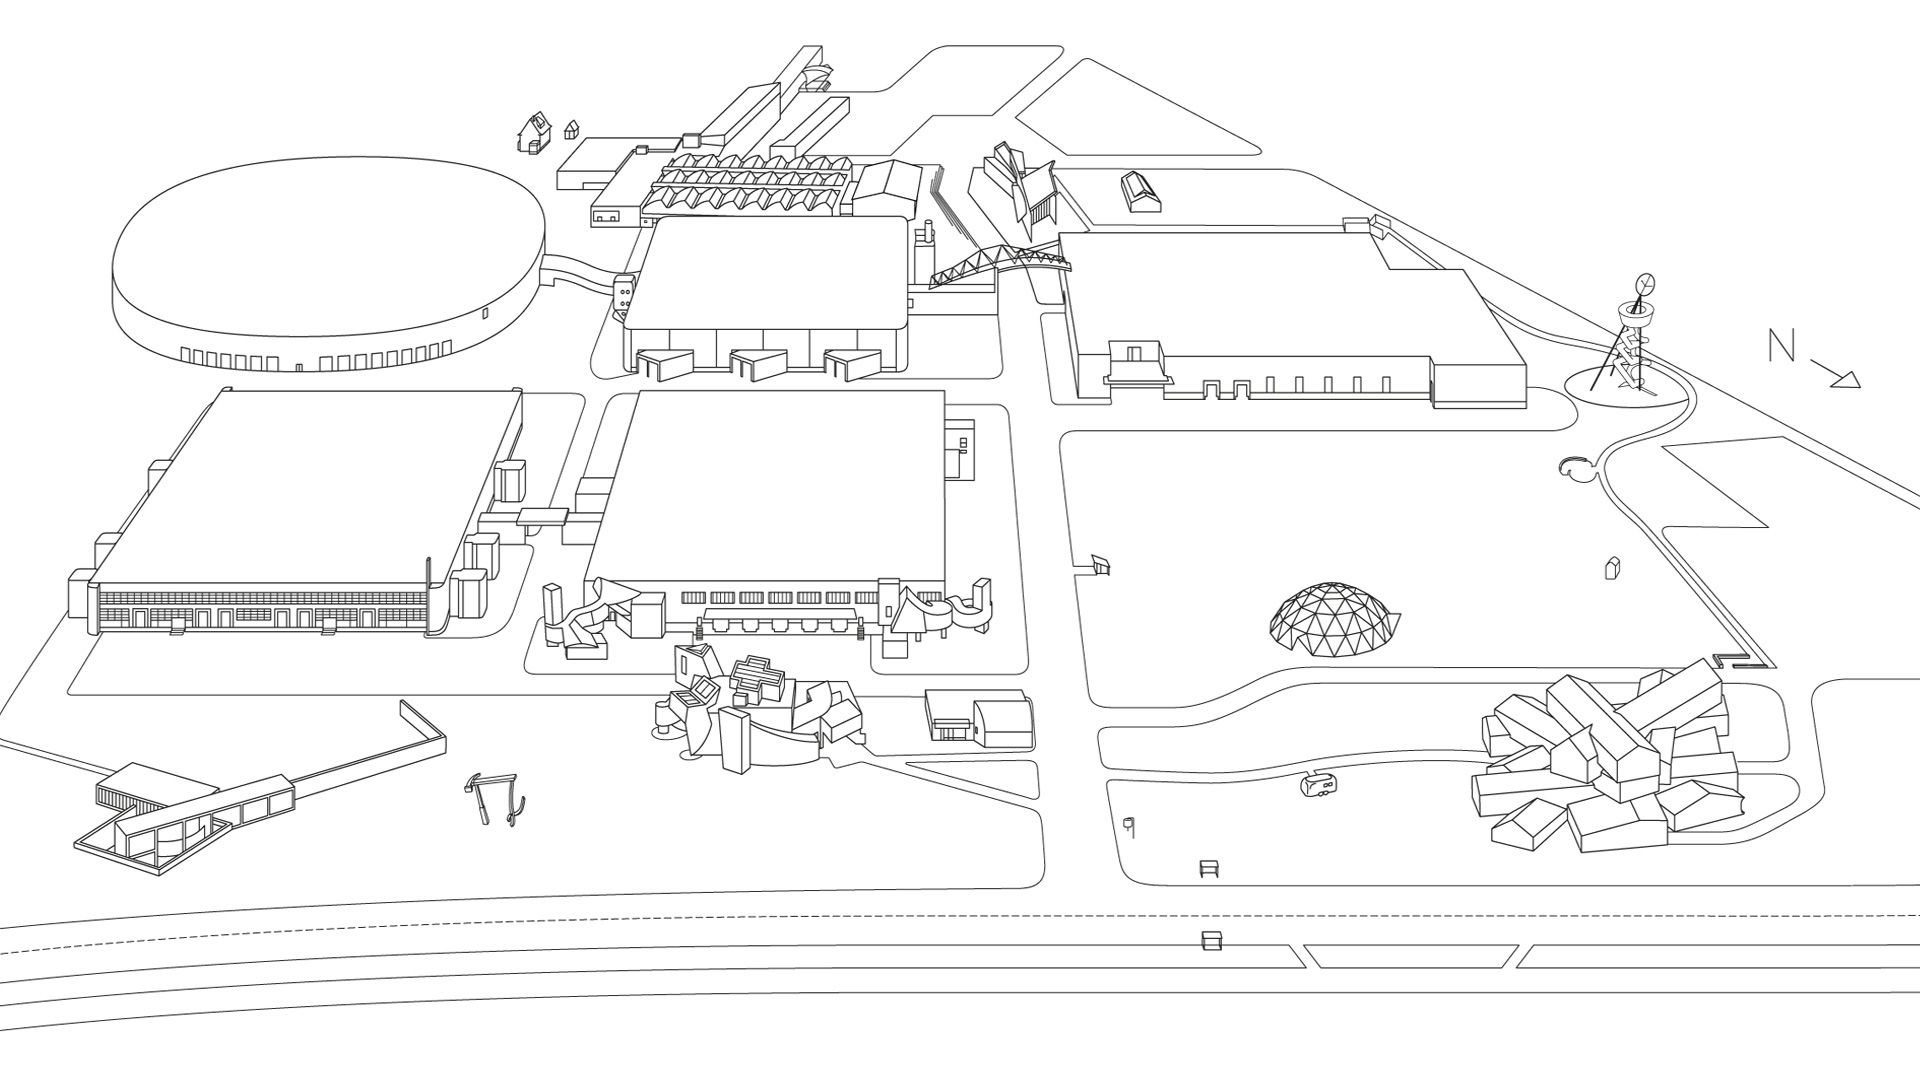 Campus_map_BLANKO_160421_web